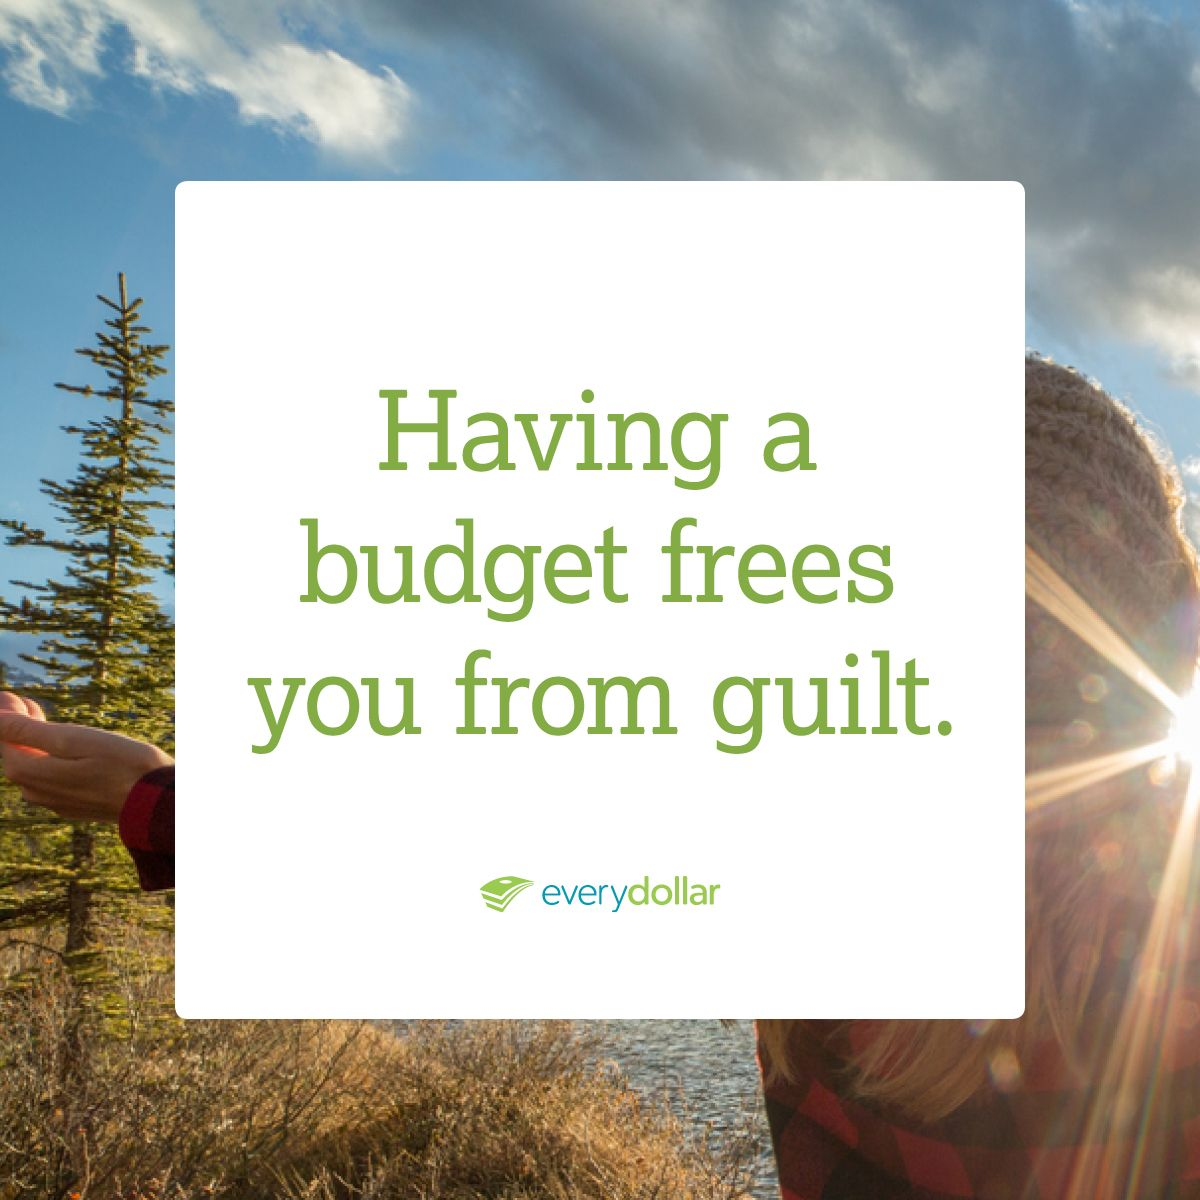 There is no guilt in spending when it is already planned